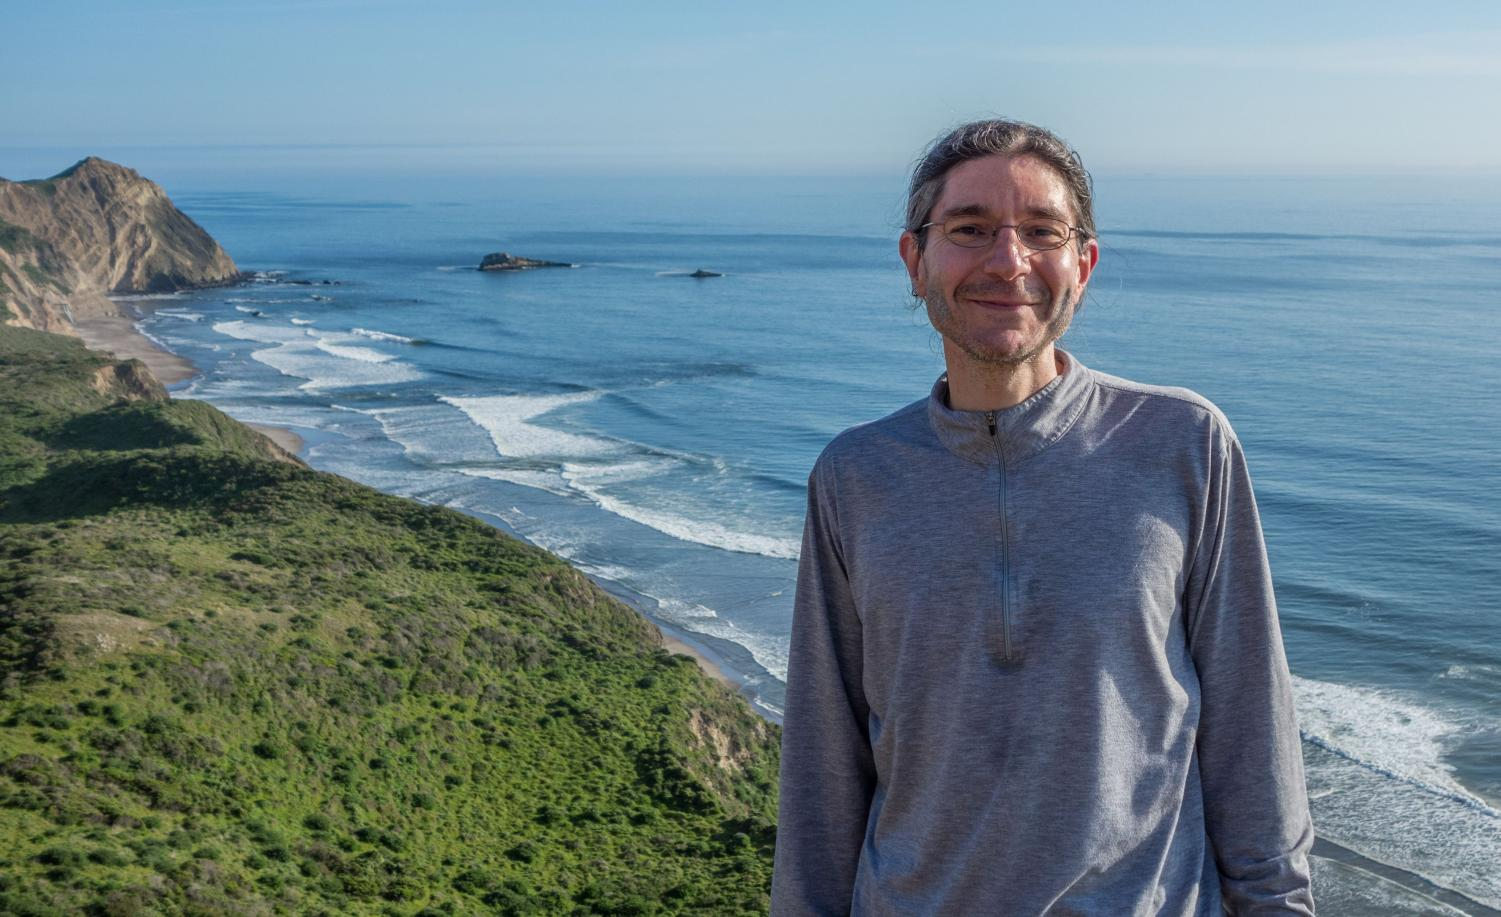 Dr. Eliot Quataert of the University of California, Berkeley presented the 18th annual Silicon Valley Astronomy Lecture.